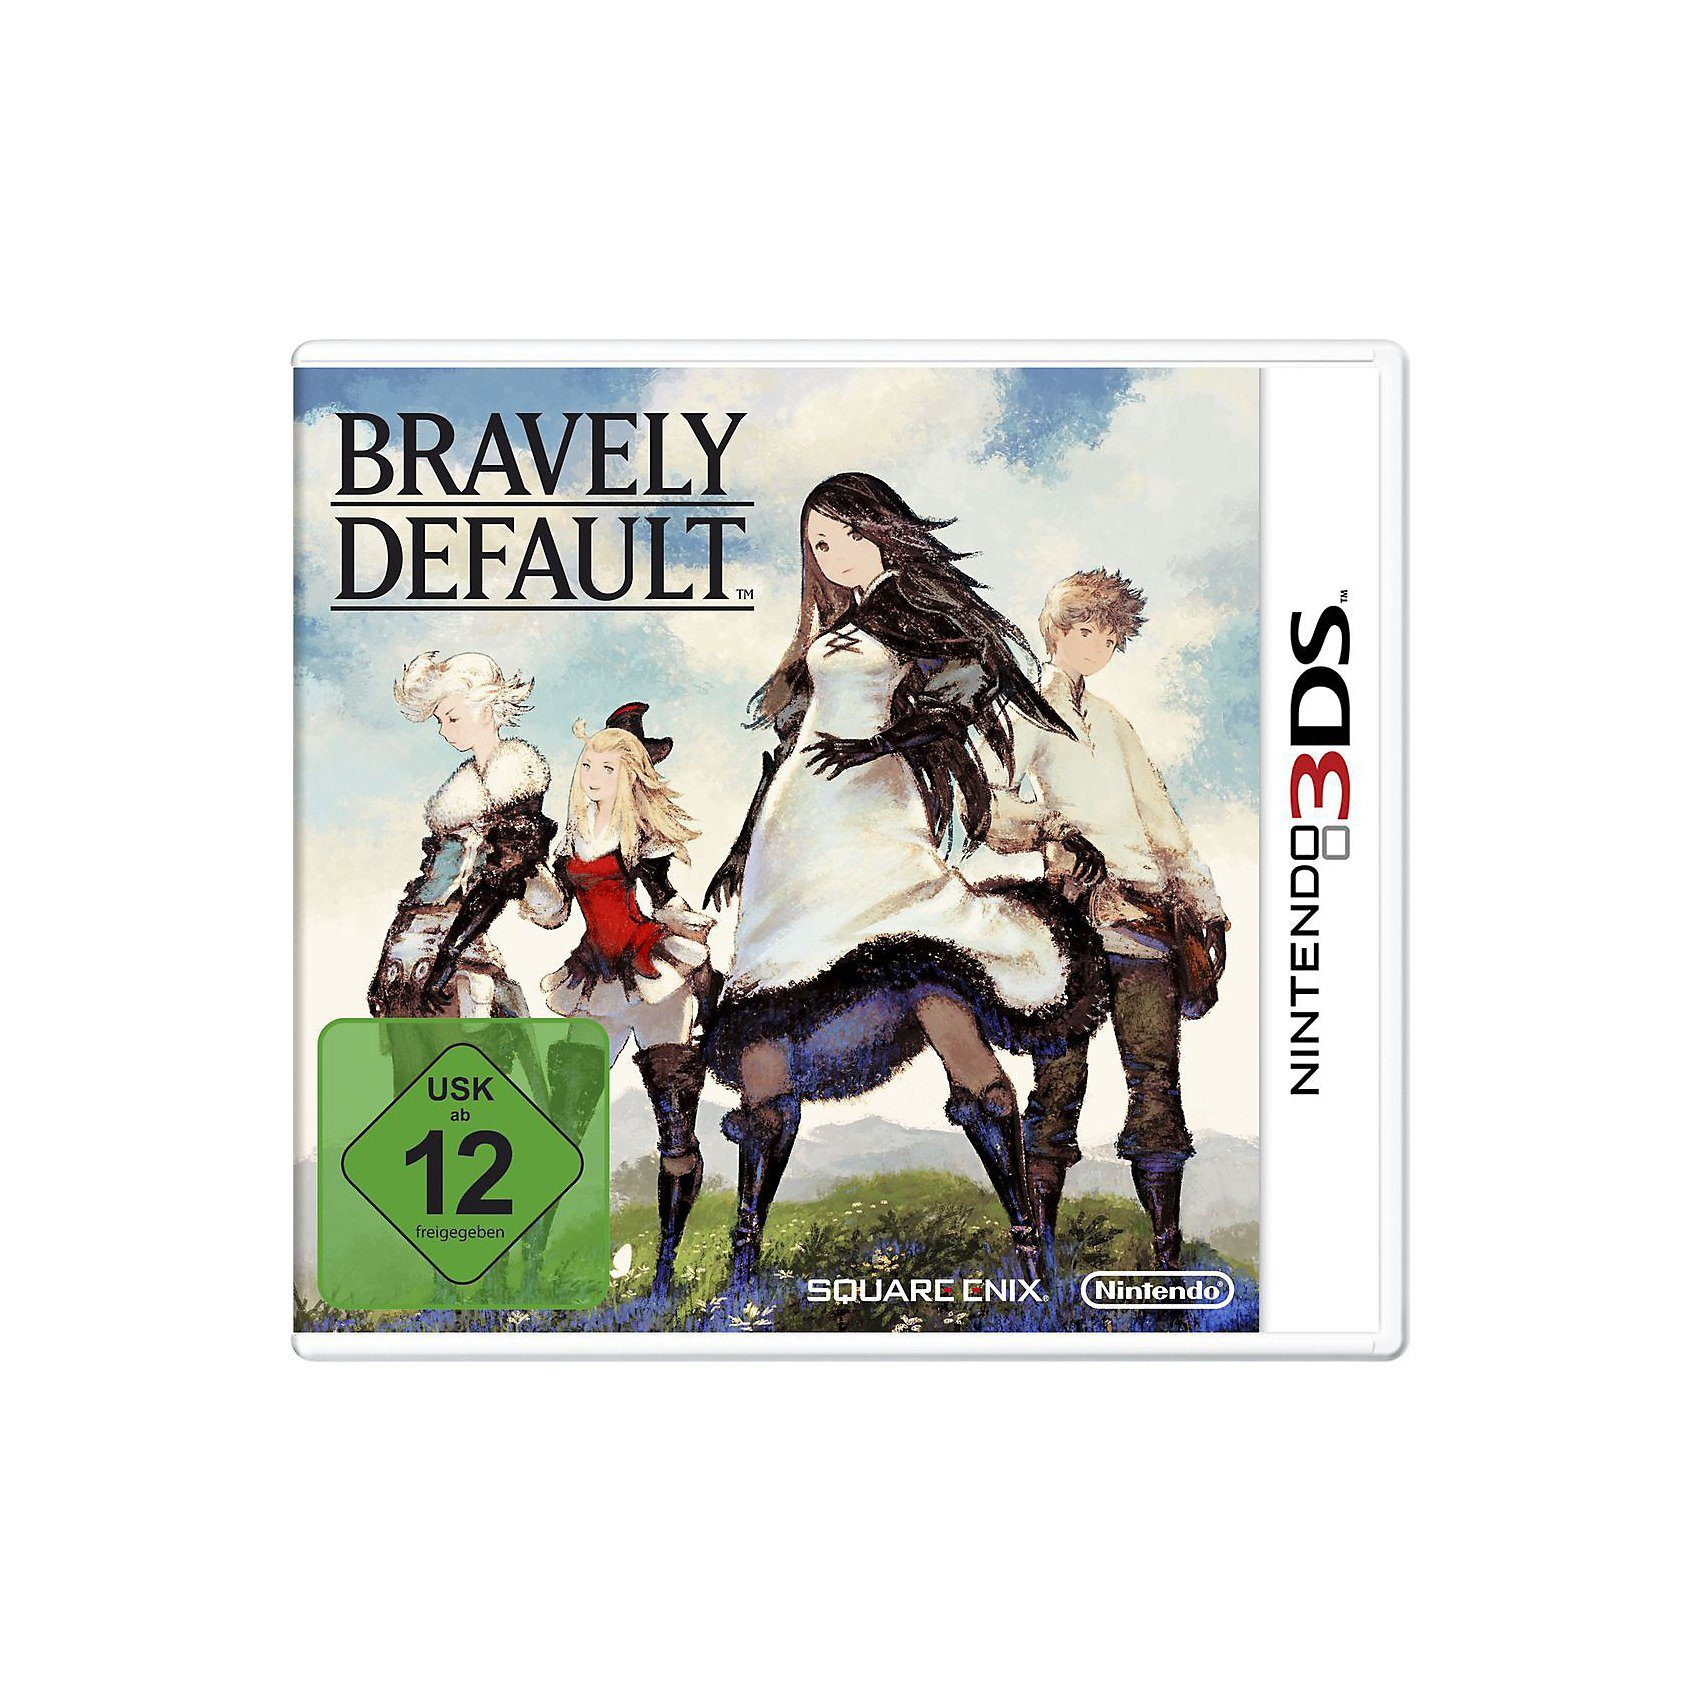 Nintendo 3DS Bravely Default